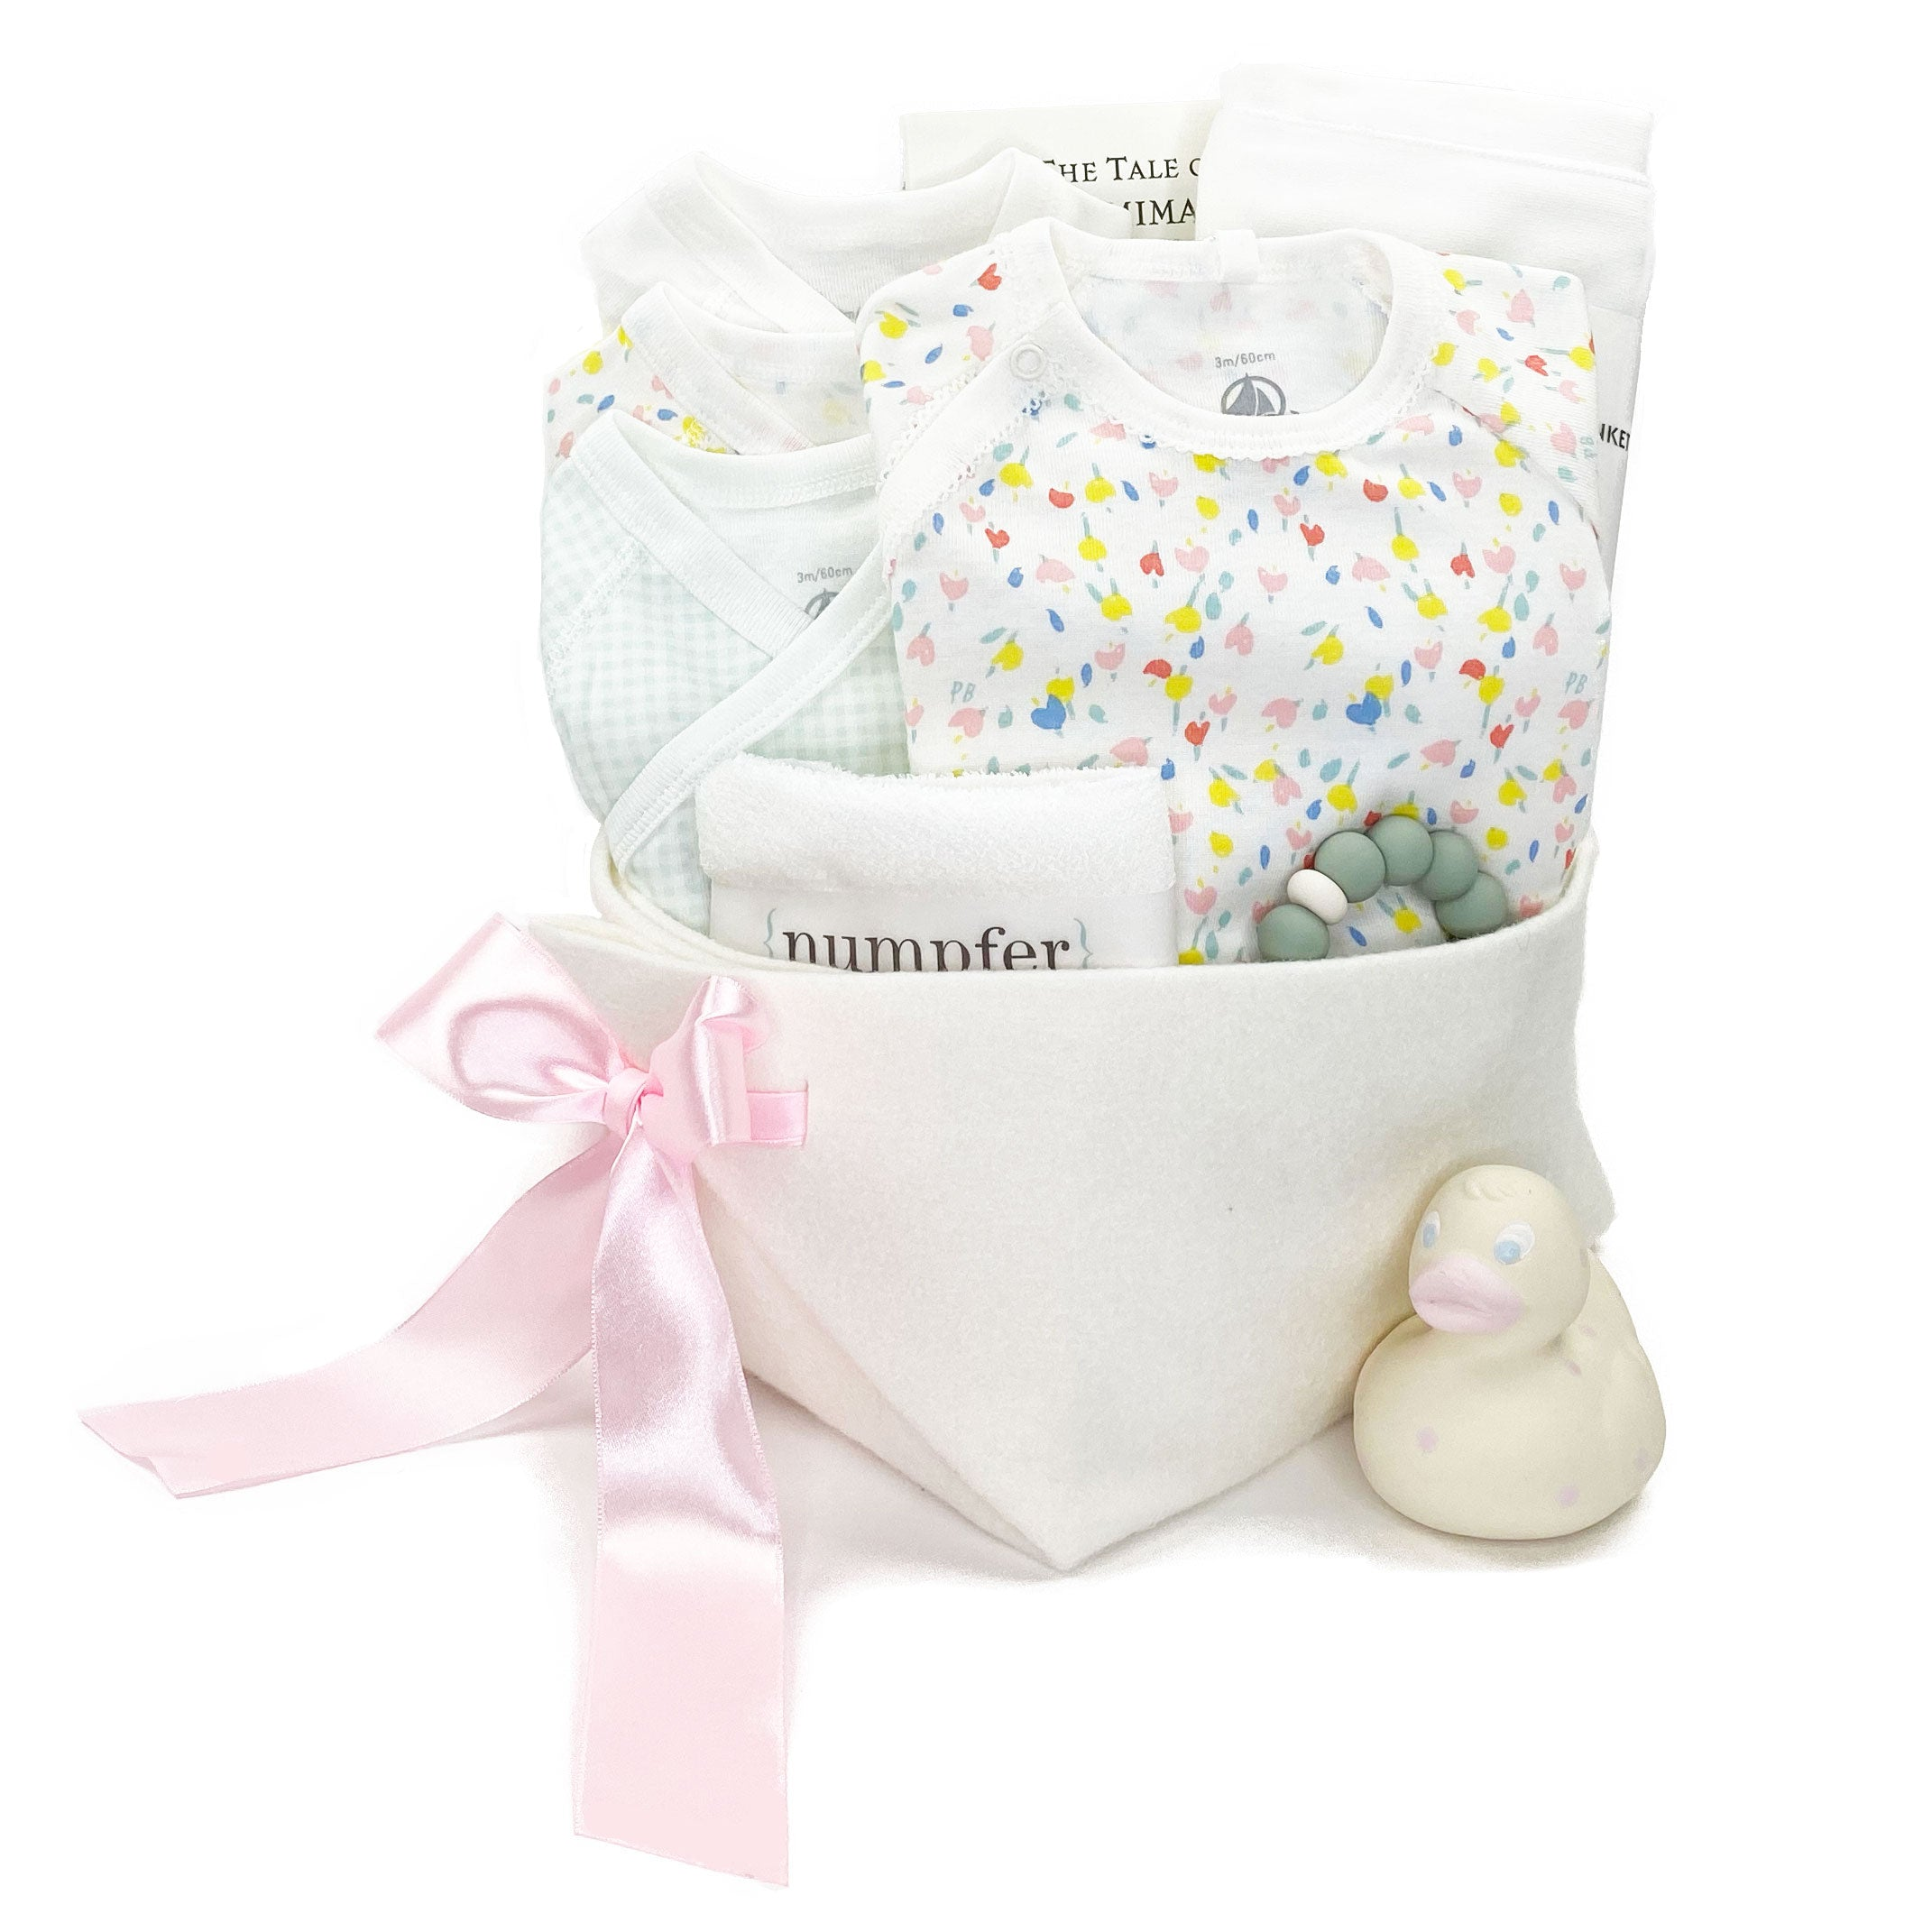 Luxury Baby Boy Gift Basket at Bonjour Baby Baskets featuring Petit Bateau